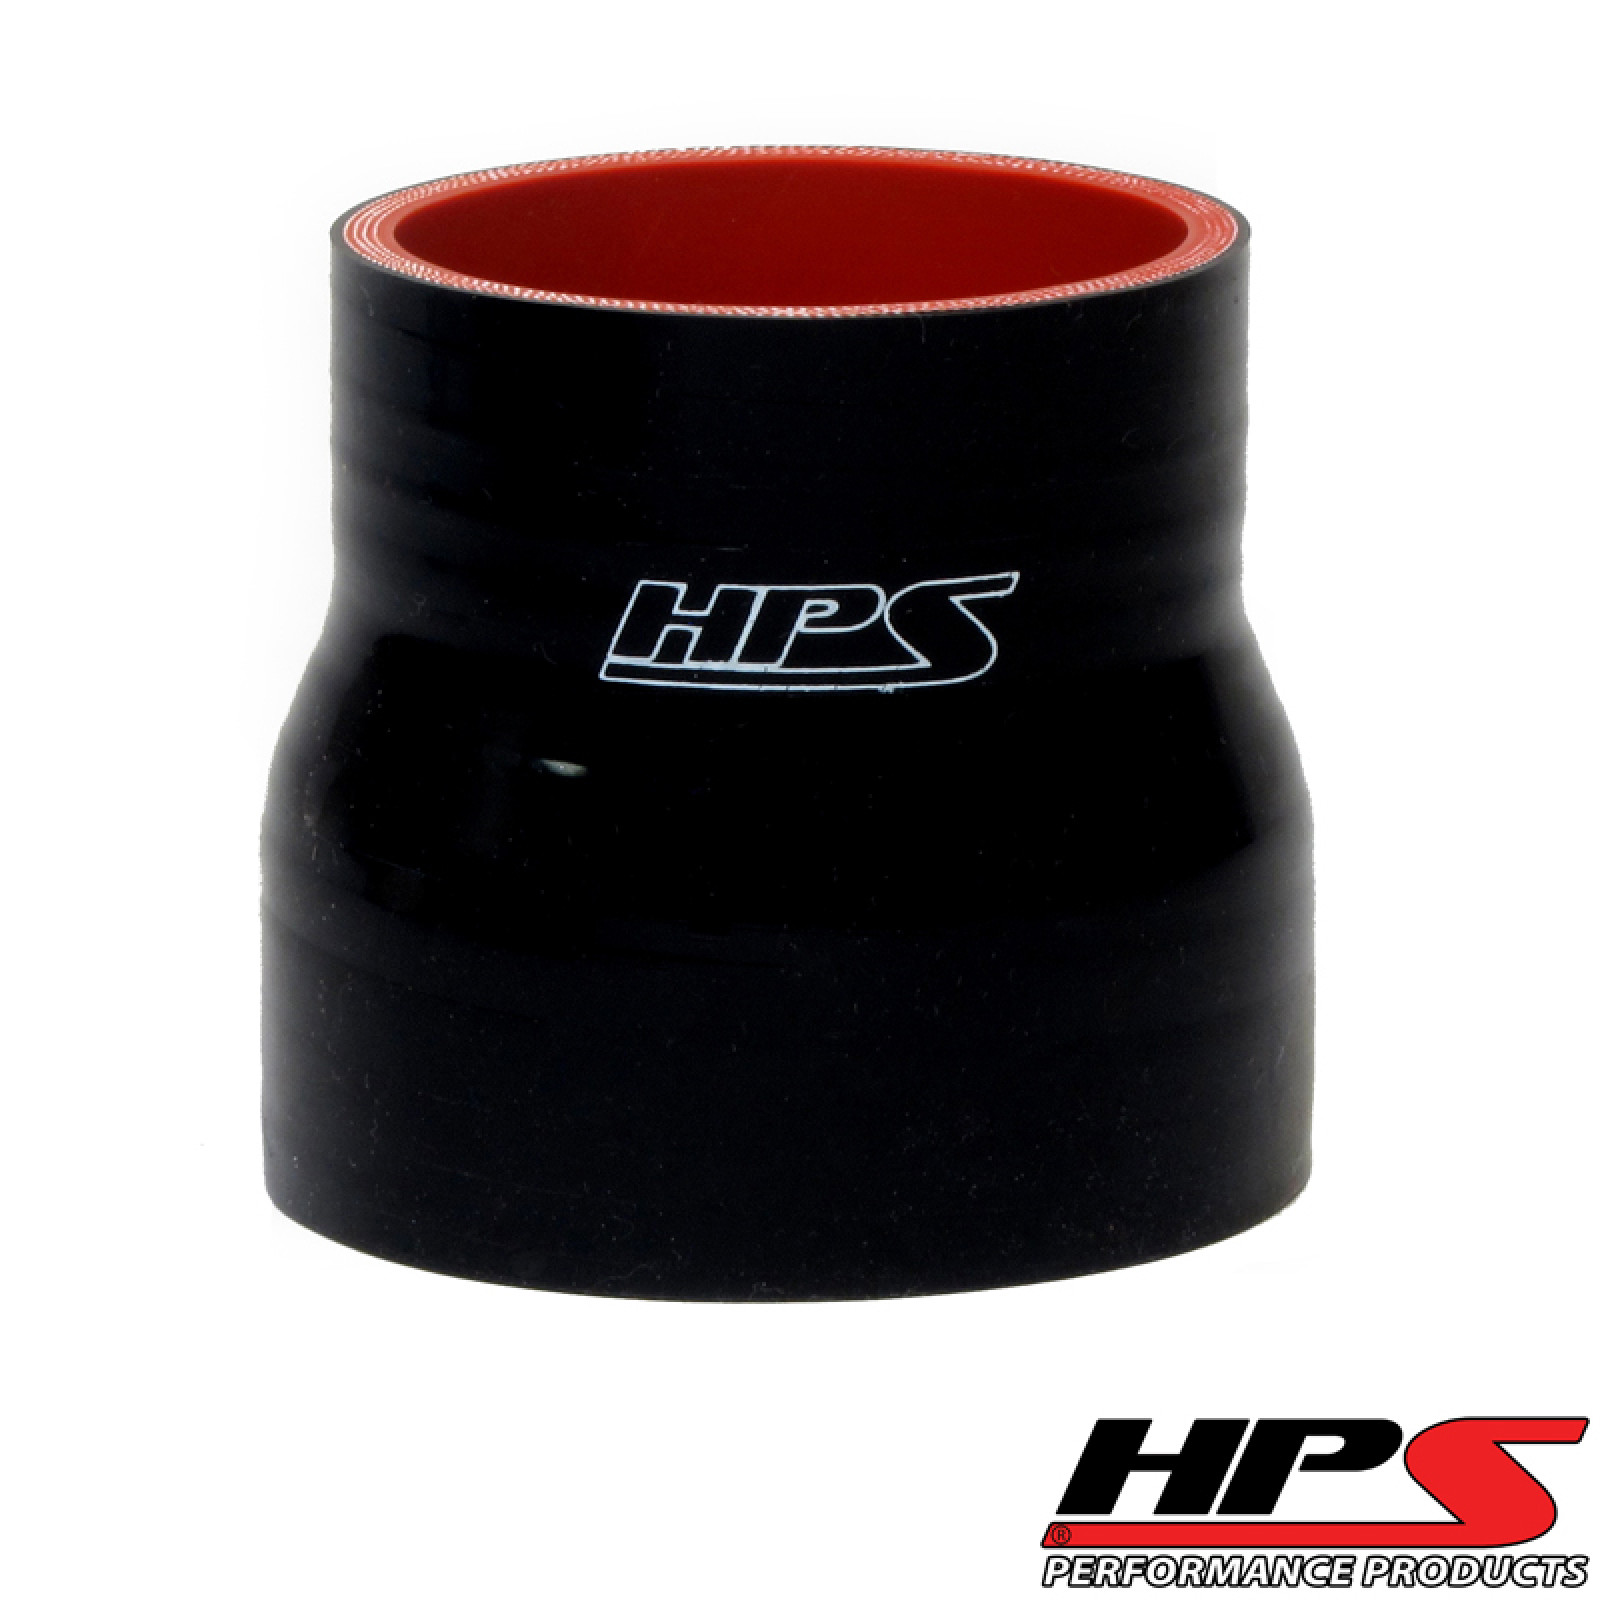 High Temp 4-Ply Reinforced Silicone Blue 3 Length Silicone Reducer Coupler Hose 3 Length HPS HTSRNBLUE-251 3.5-3.75 ID